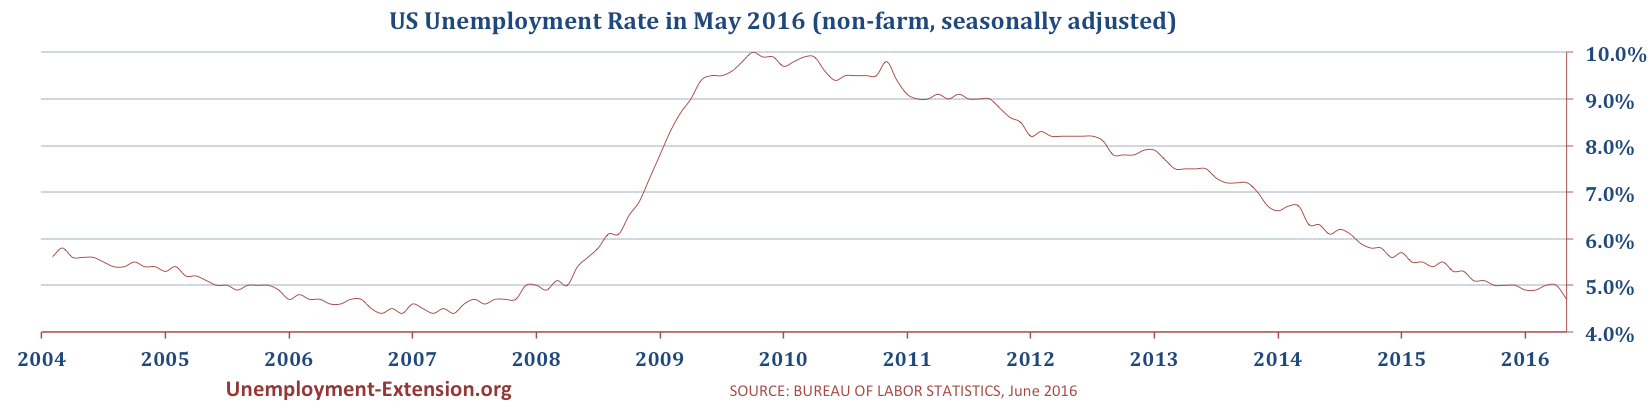 US Unemployment Rate in May 2016 is 4.7% (April's rate 5.0%). Mostly due to an increase in part-time employment.